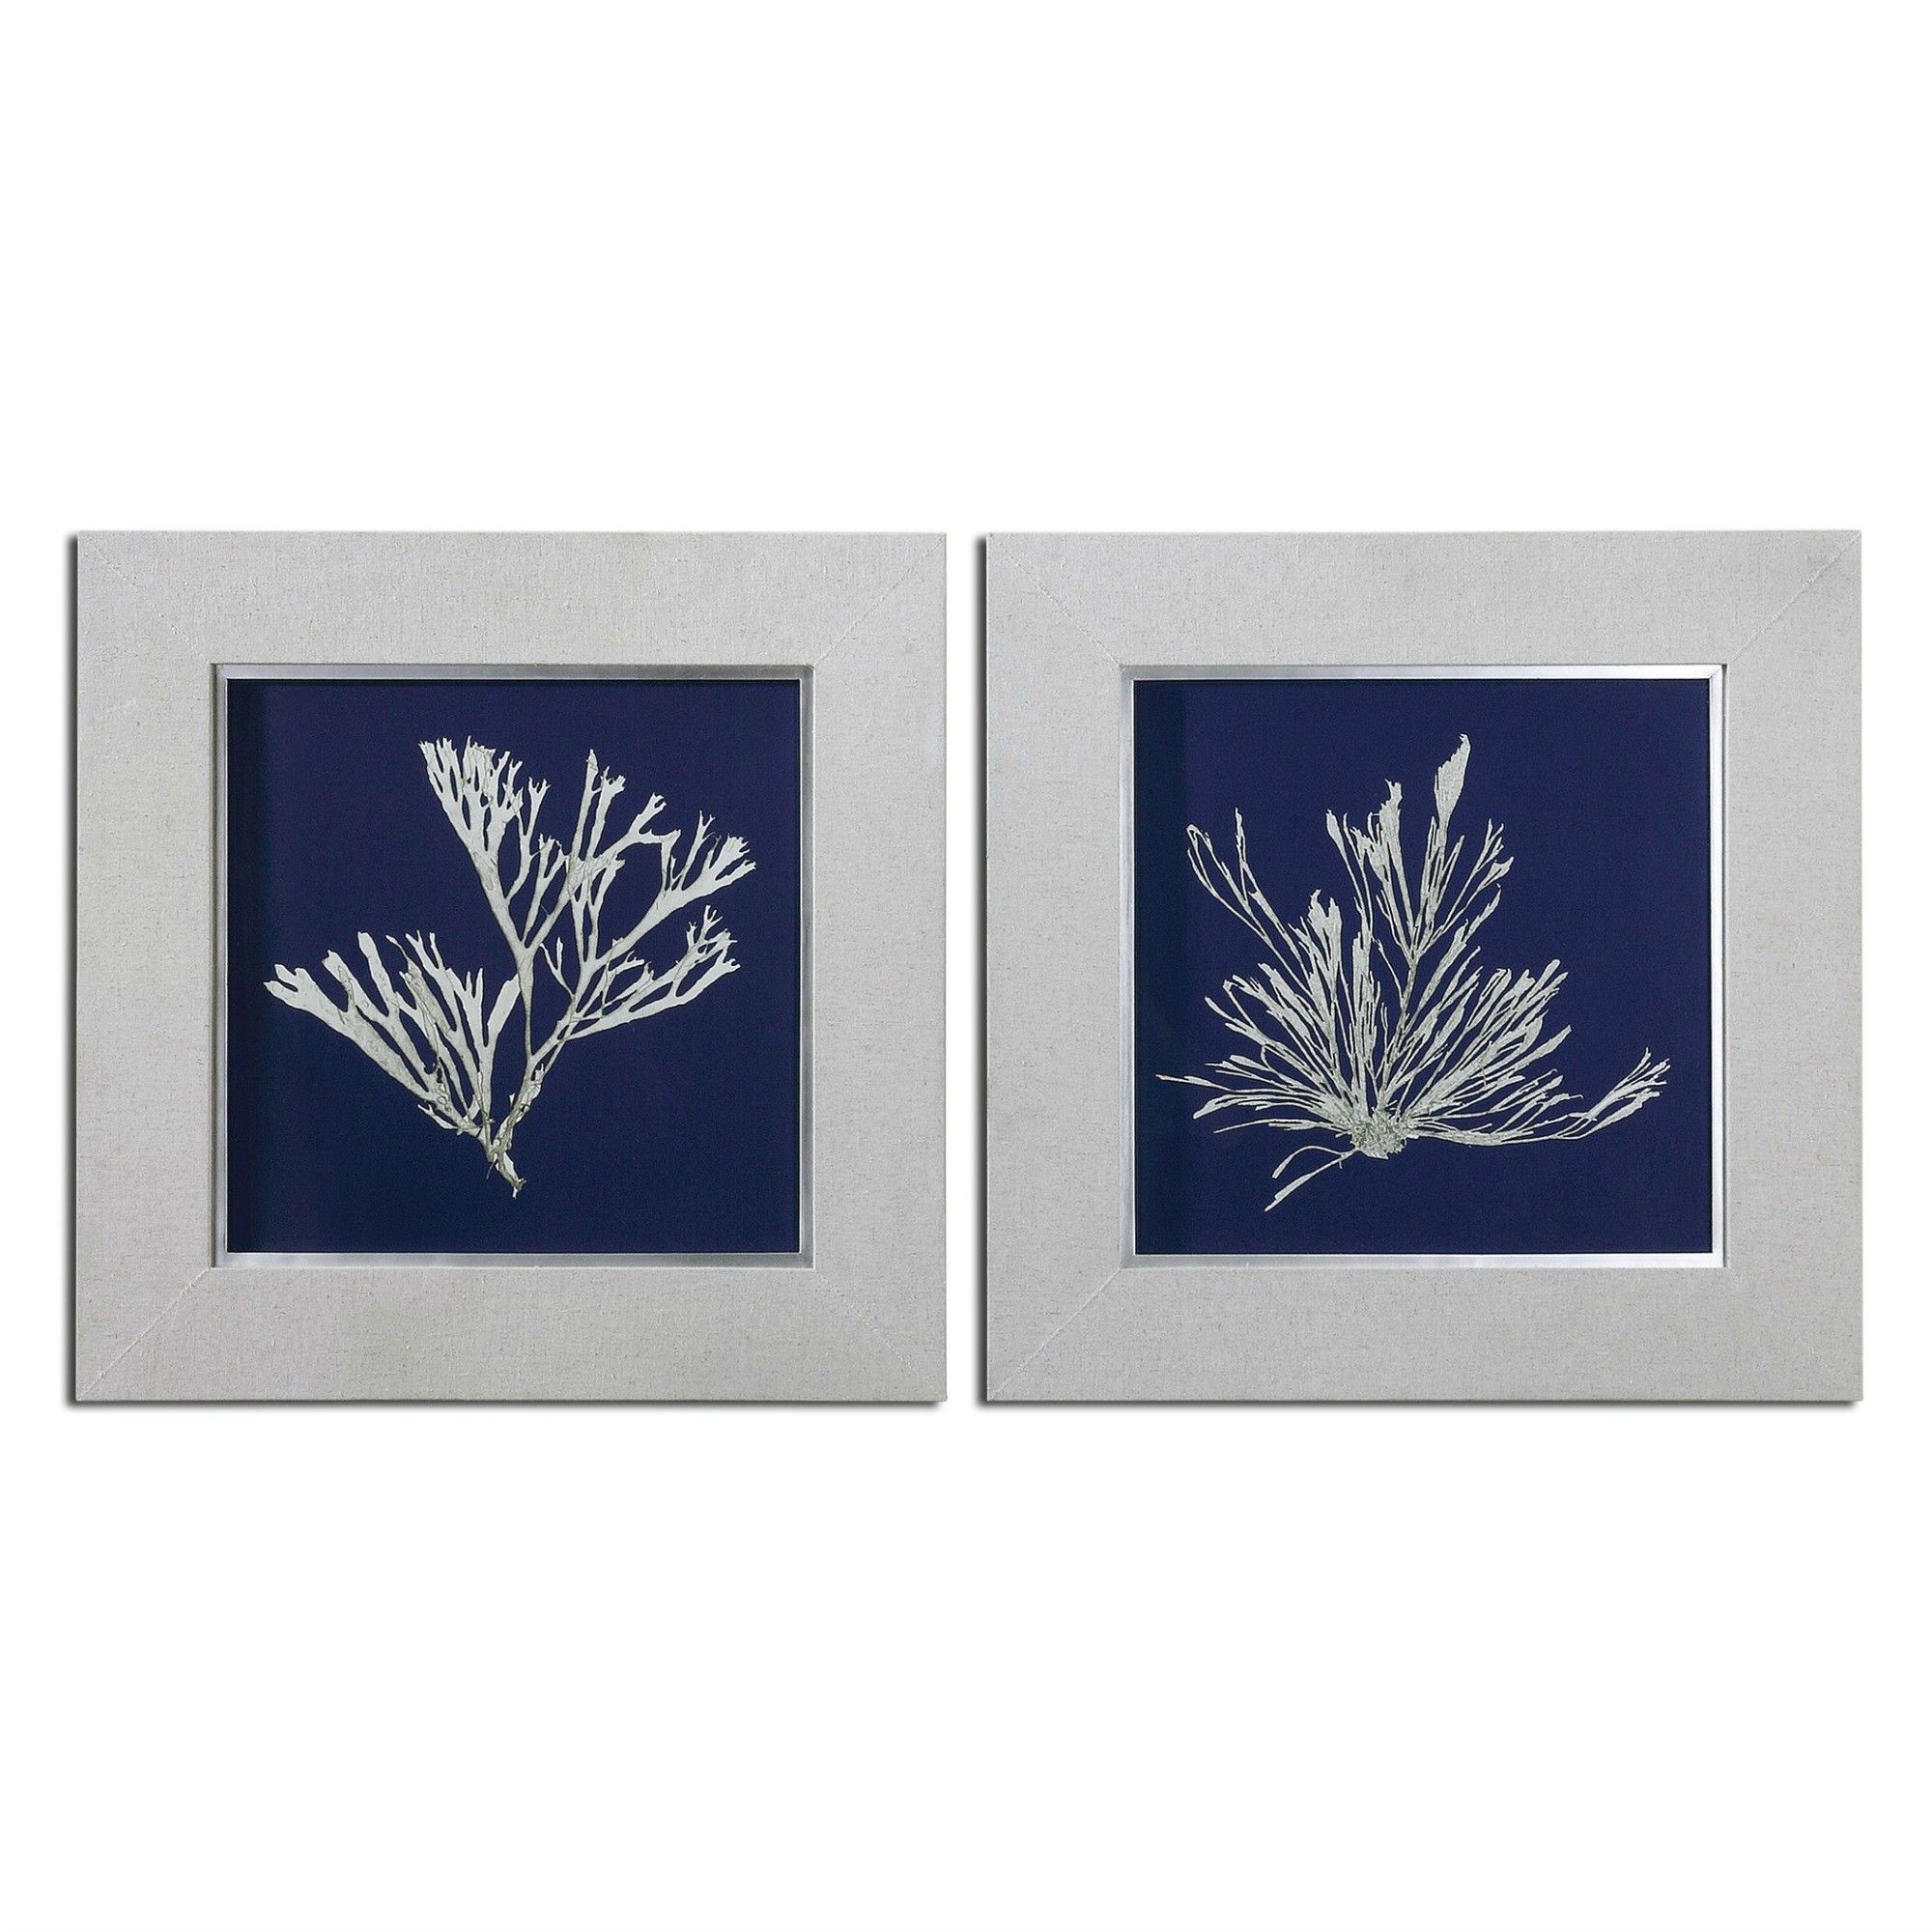 Seaweed on navy wall art set of elegant prints to add to a